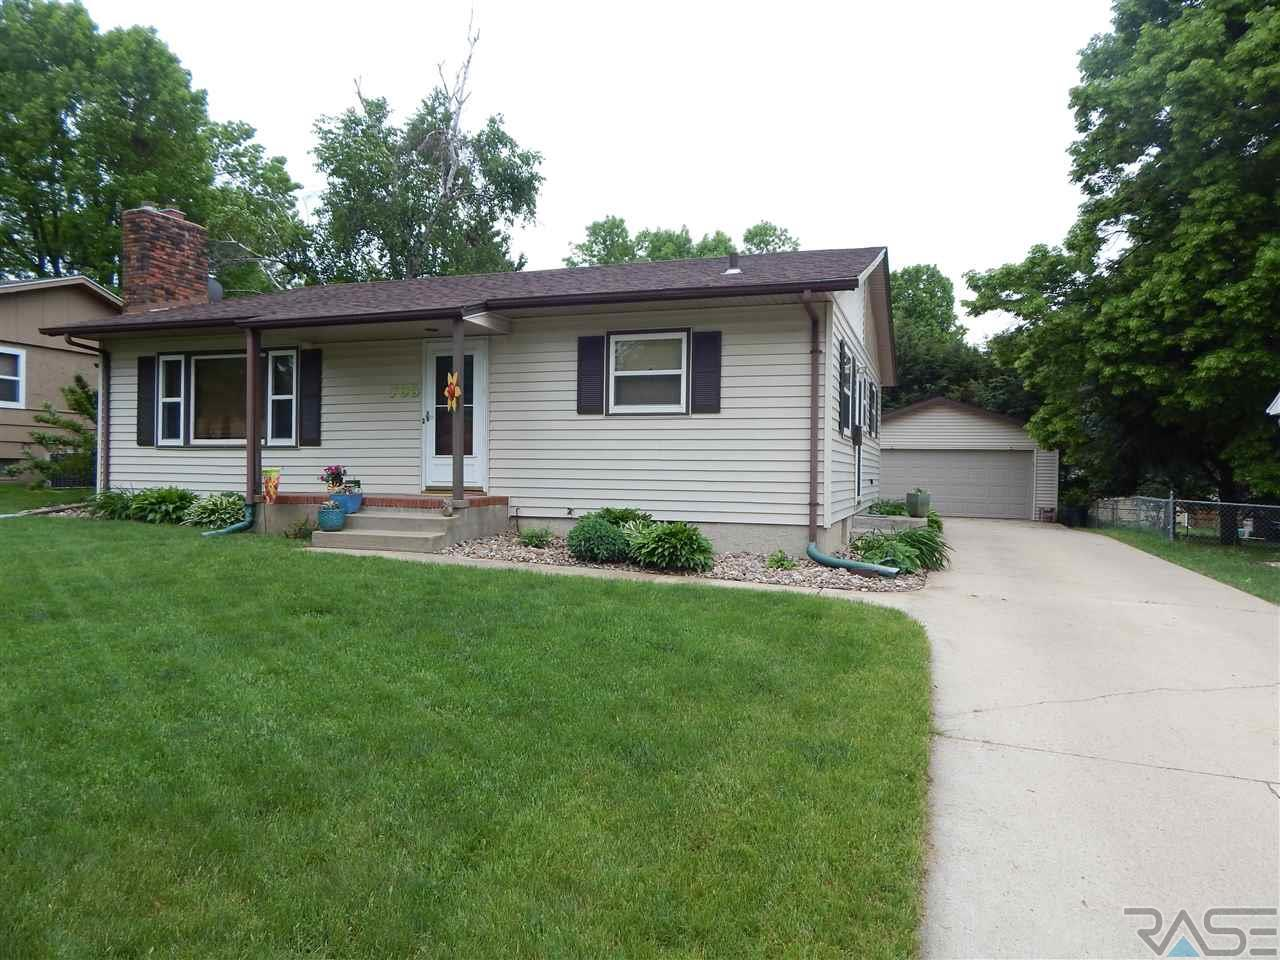 705 S Annway Dr, Sioux Falls, SD 57103